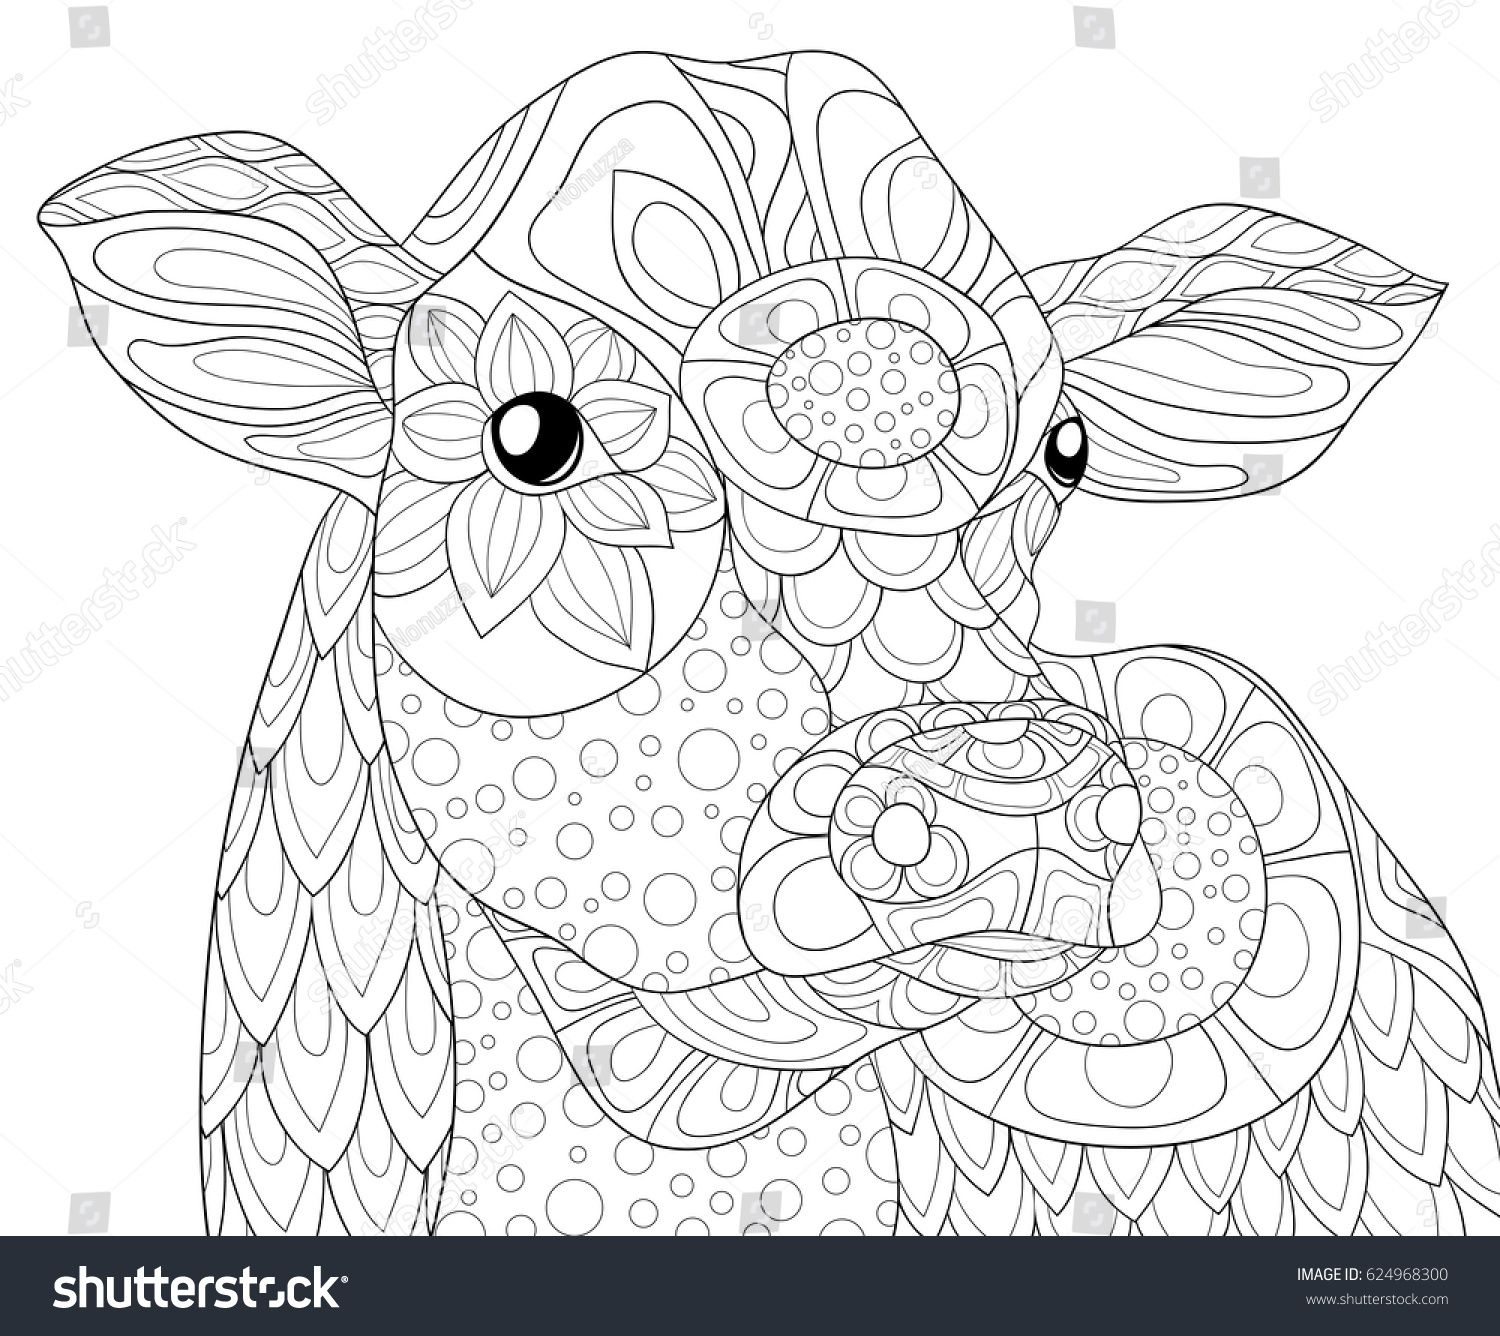 Adult Coloring Page Cow Zen Art Style Illustration Cow Coloring